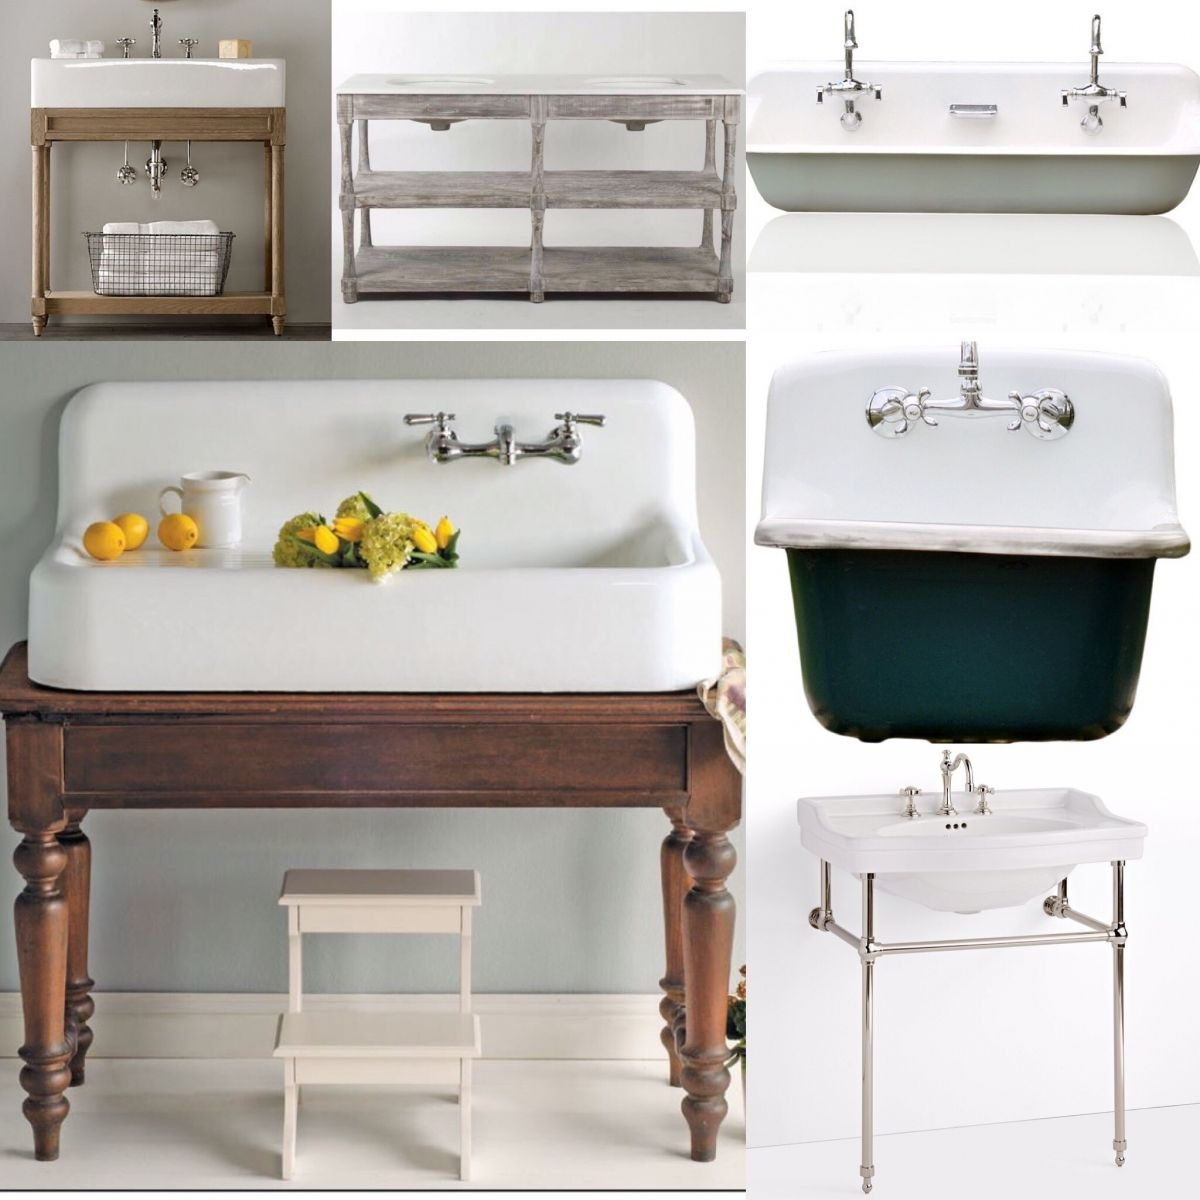 farmhouse kitchen sink french country designs if you 39re building a or looking to remodel